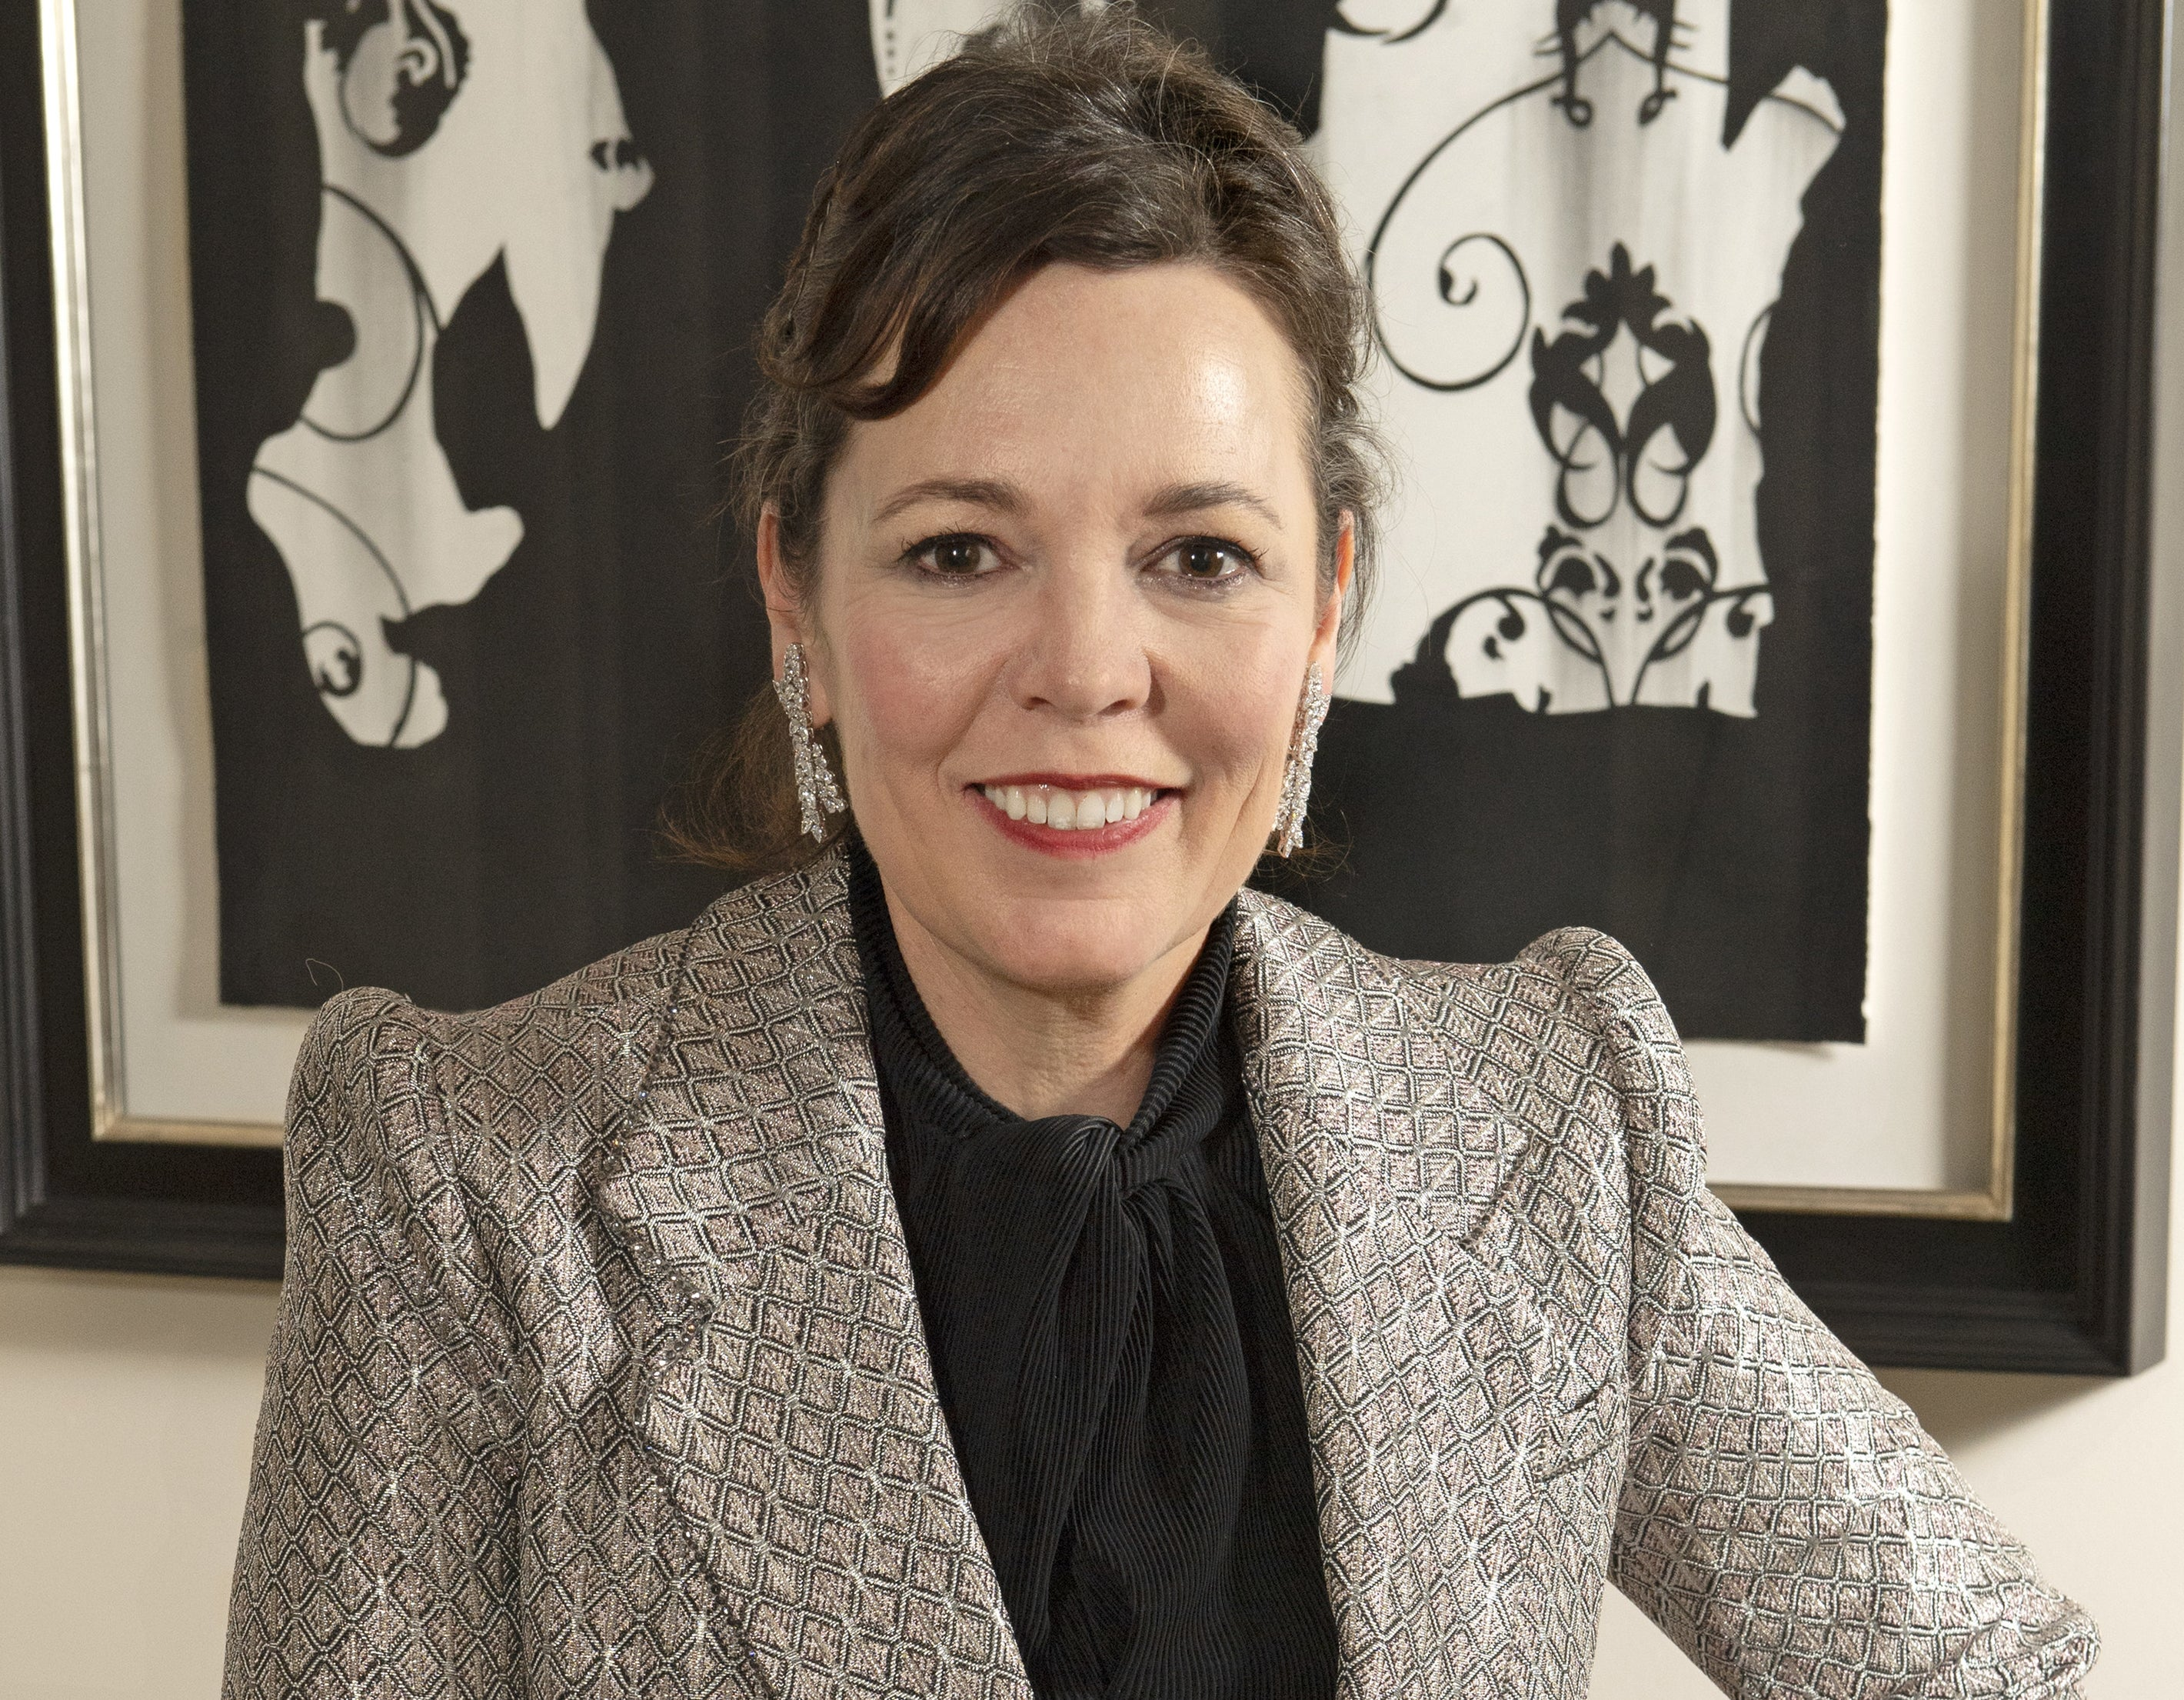 Olivia Colman smiles while sitting in a living room